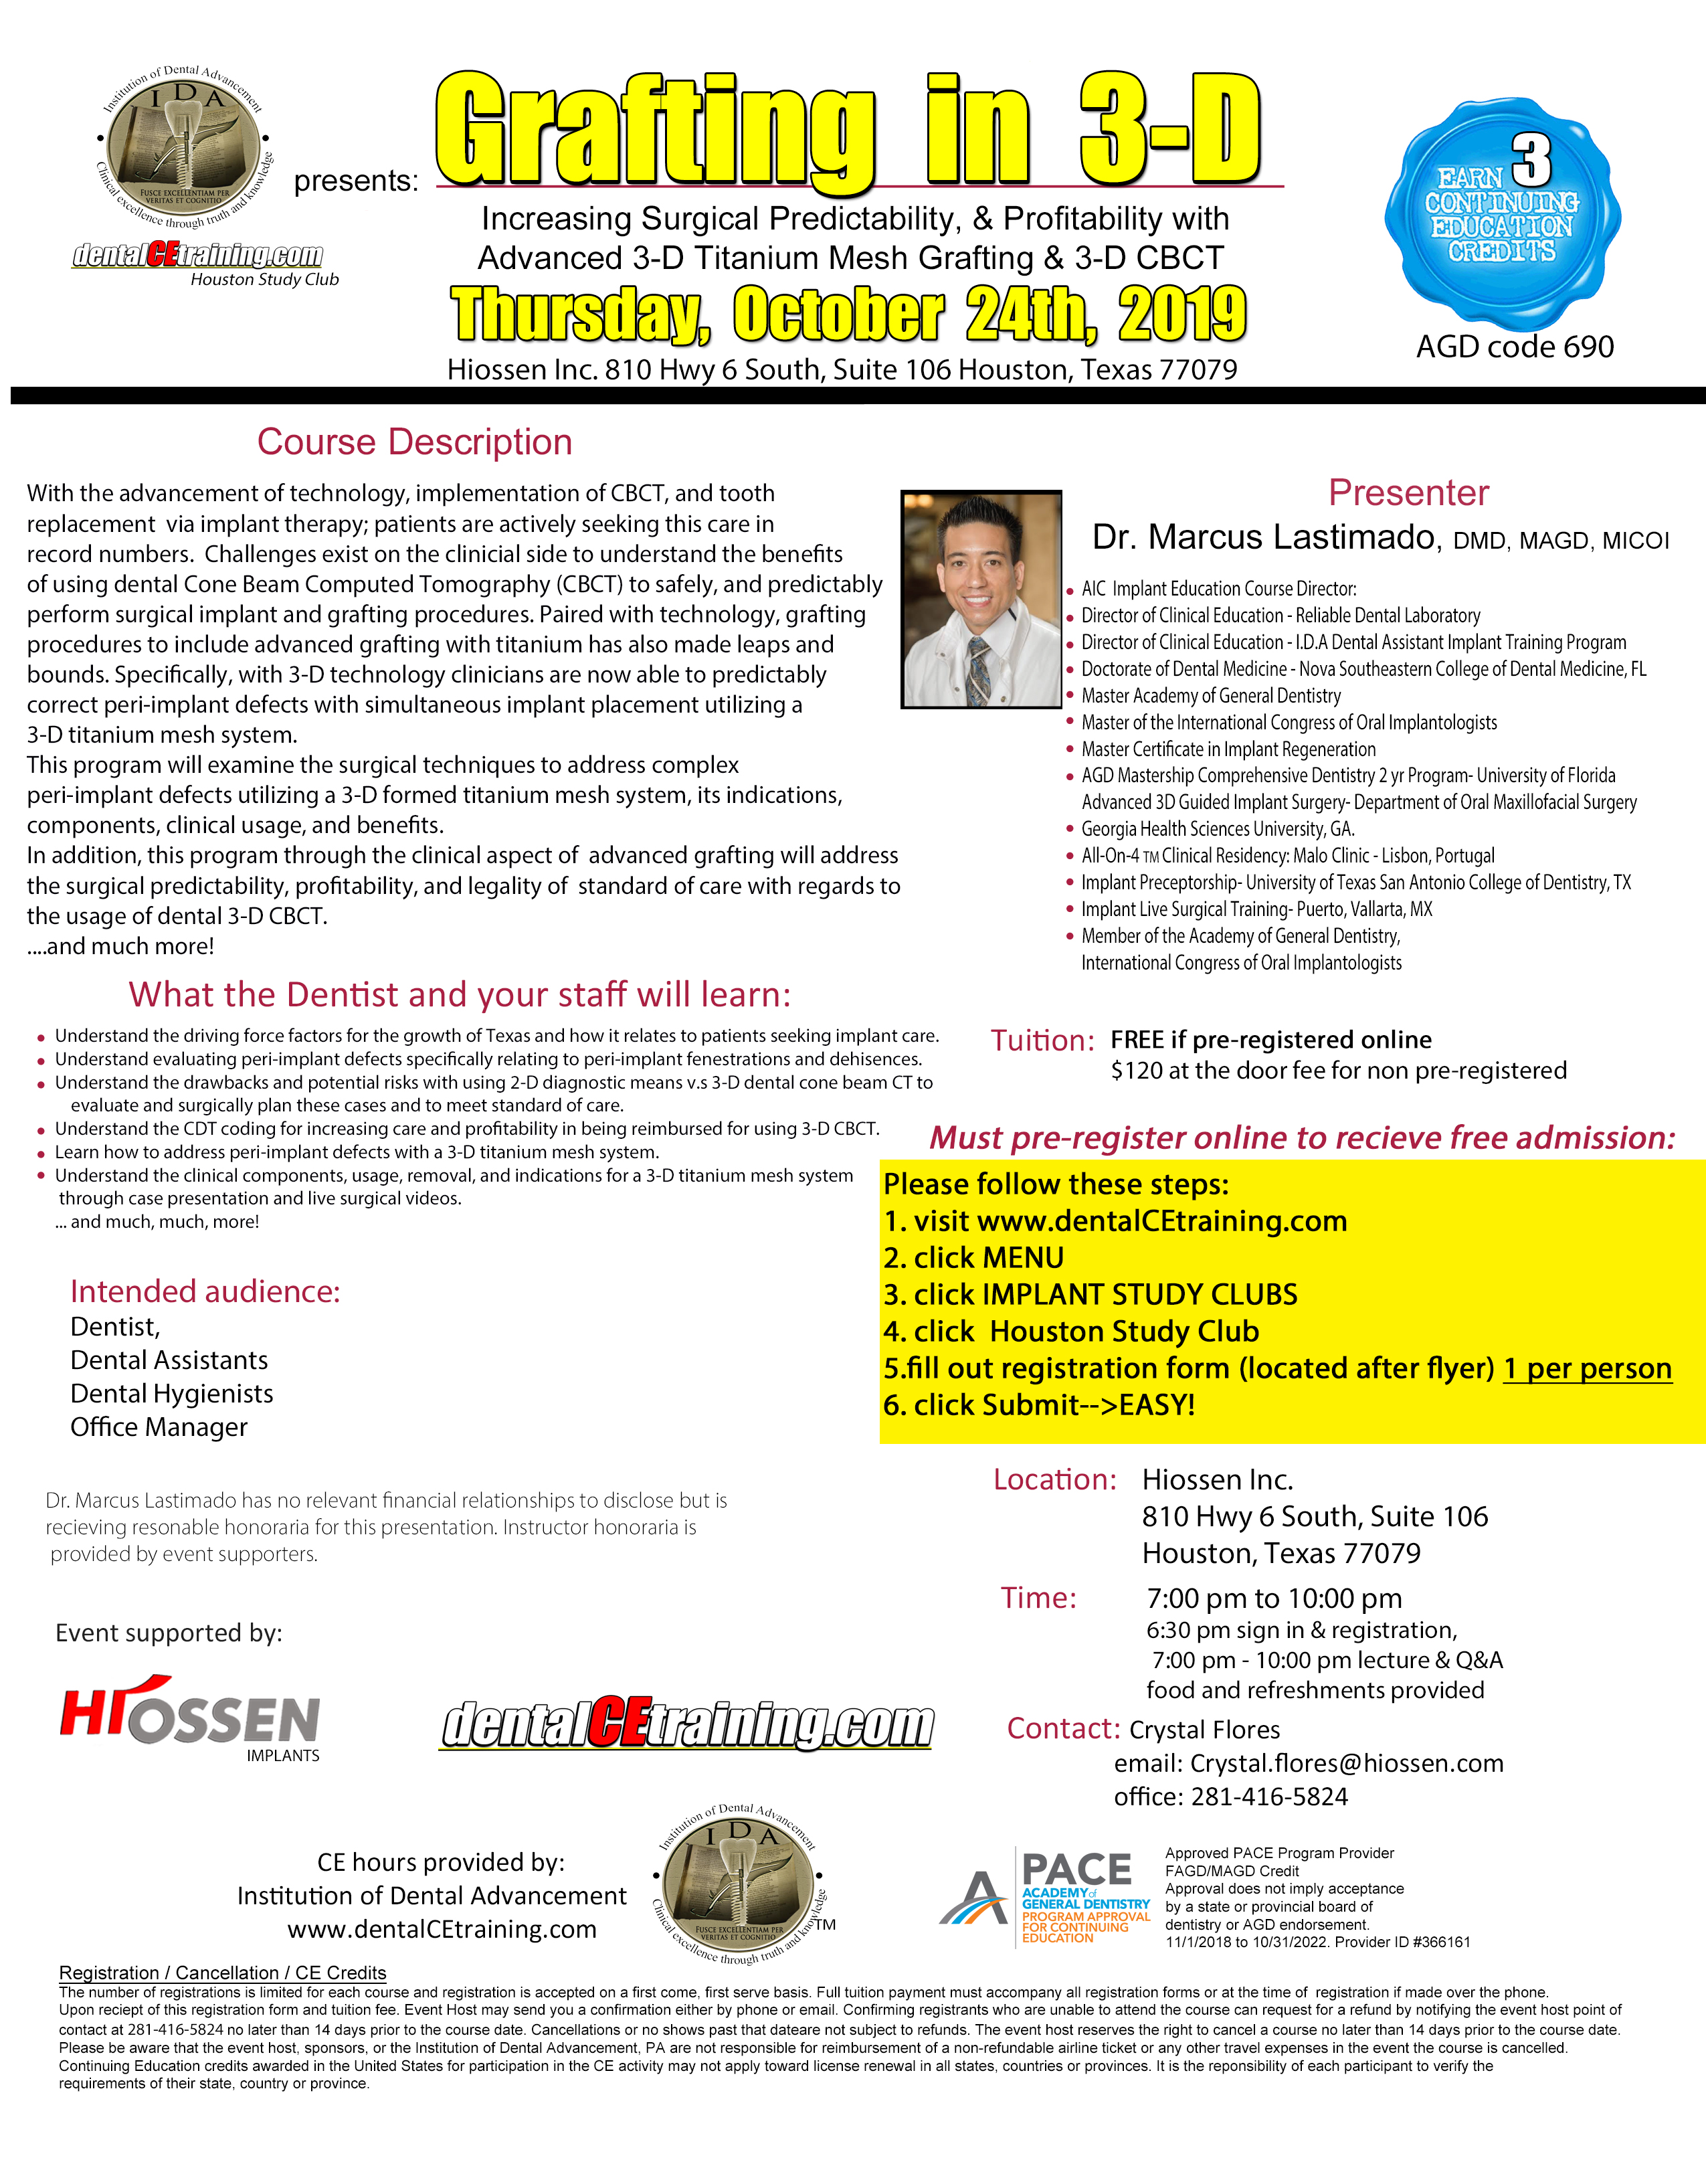 dental implant training course houston texas